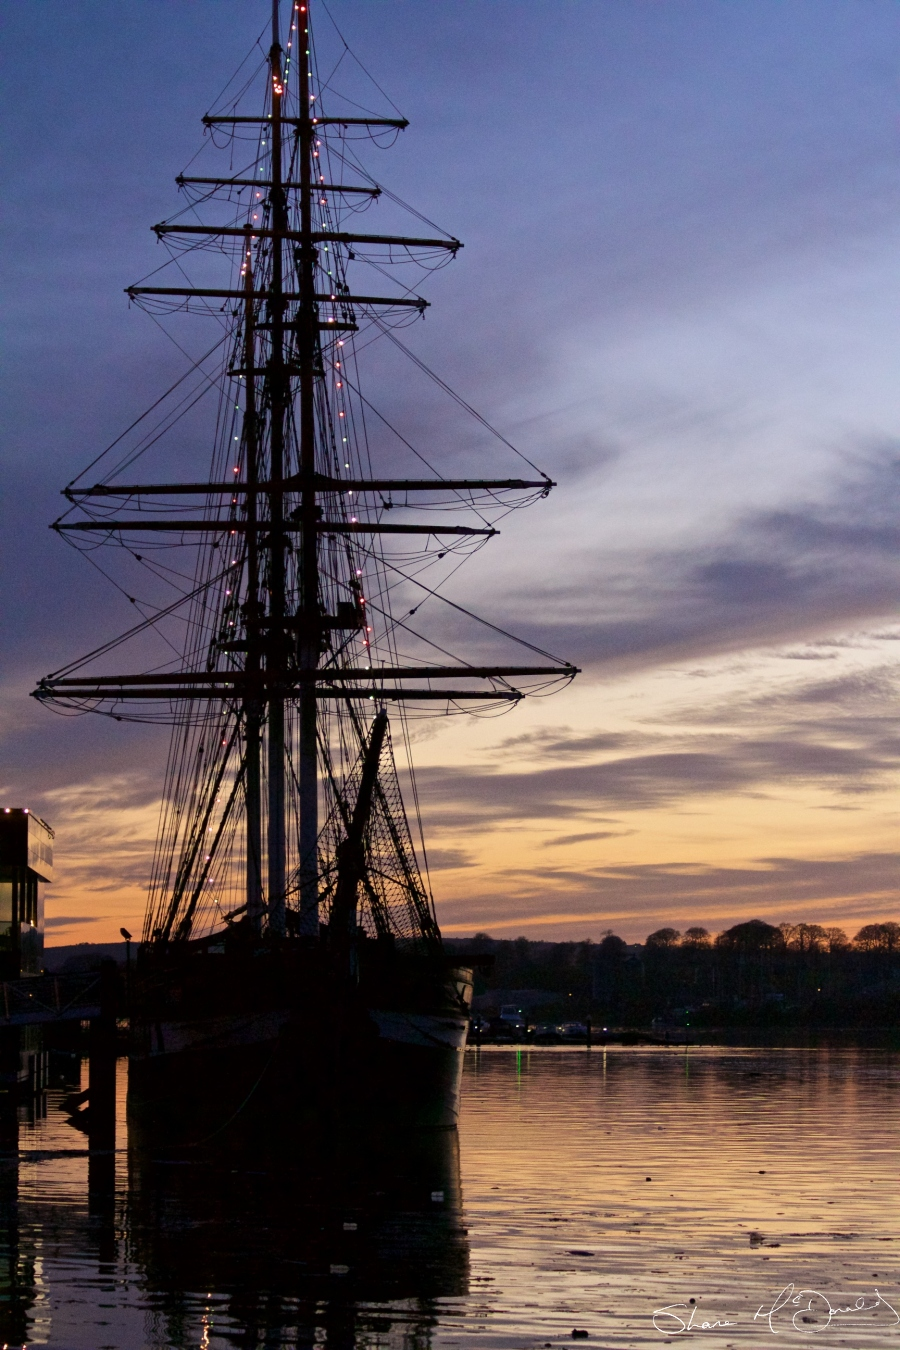 Dunbrody Famine Ship just after Sunset, New Ross, Co. Wexford, ireland